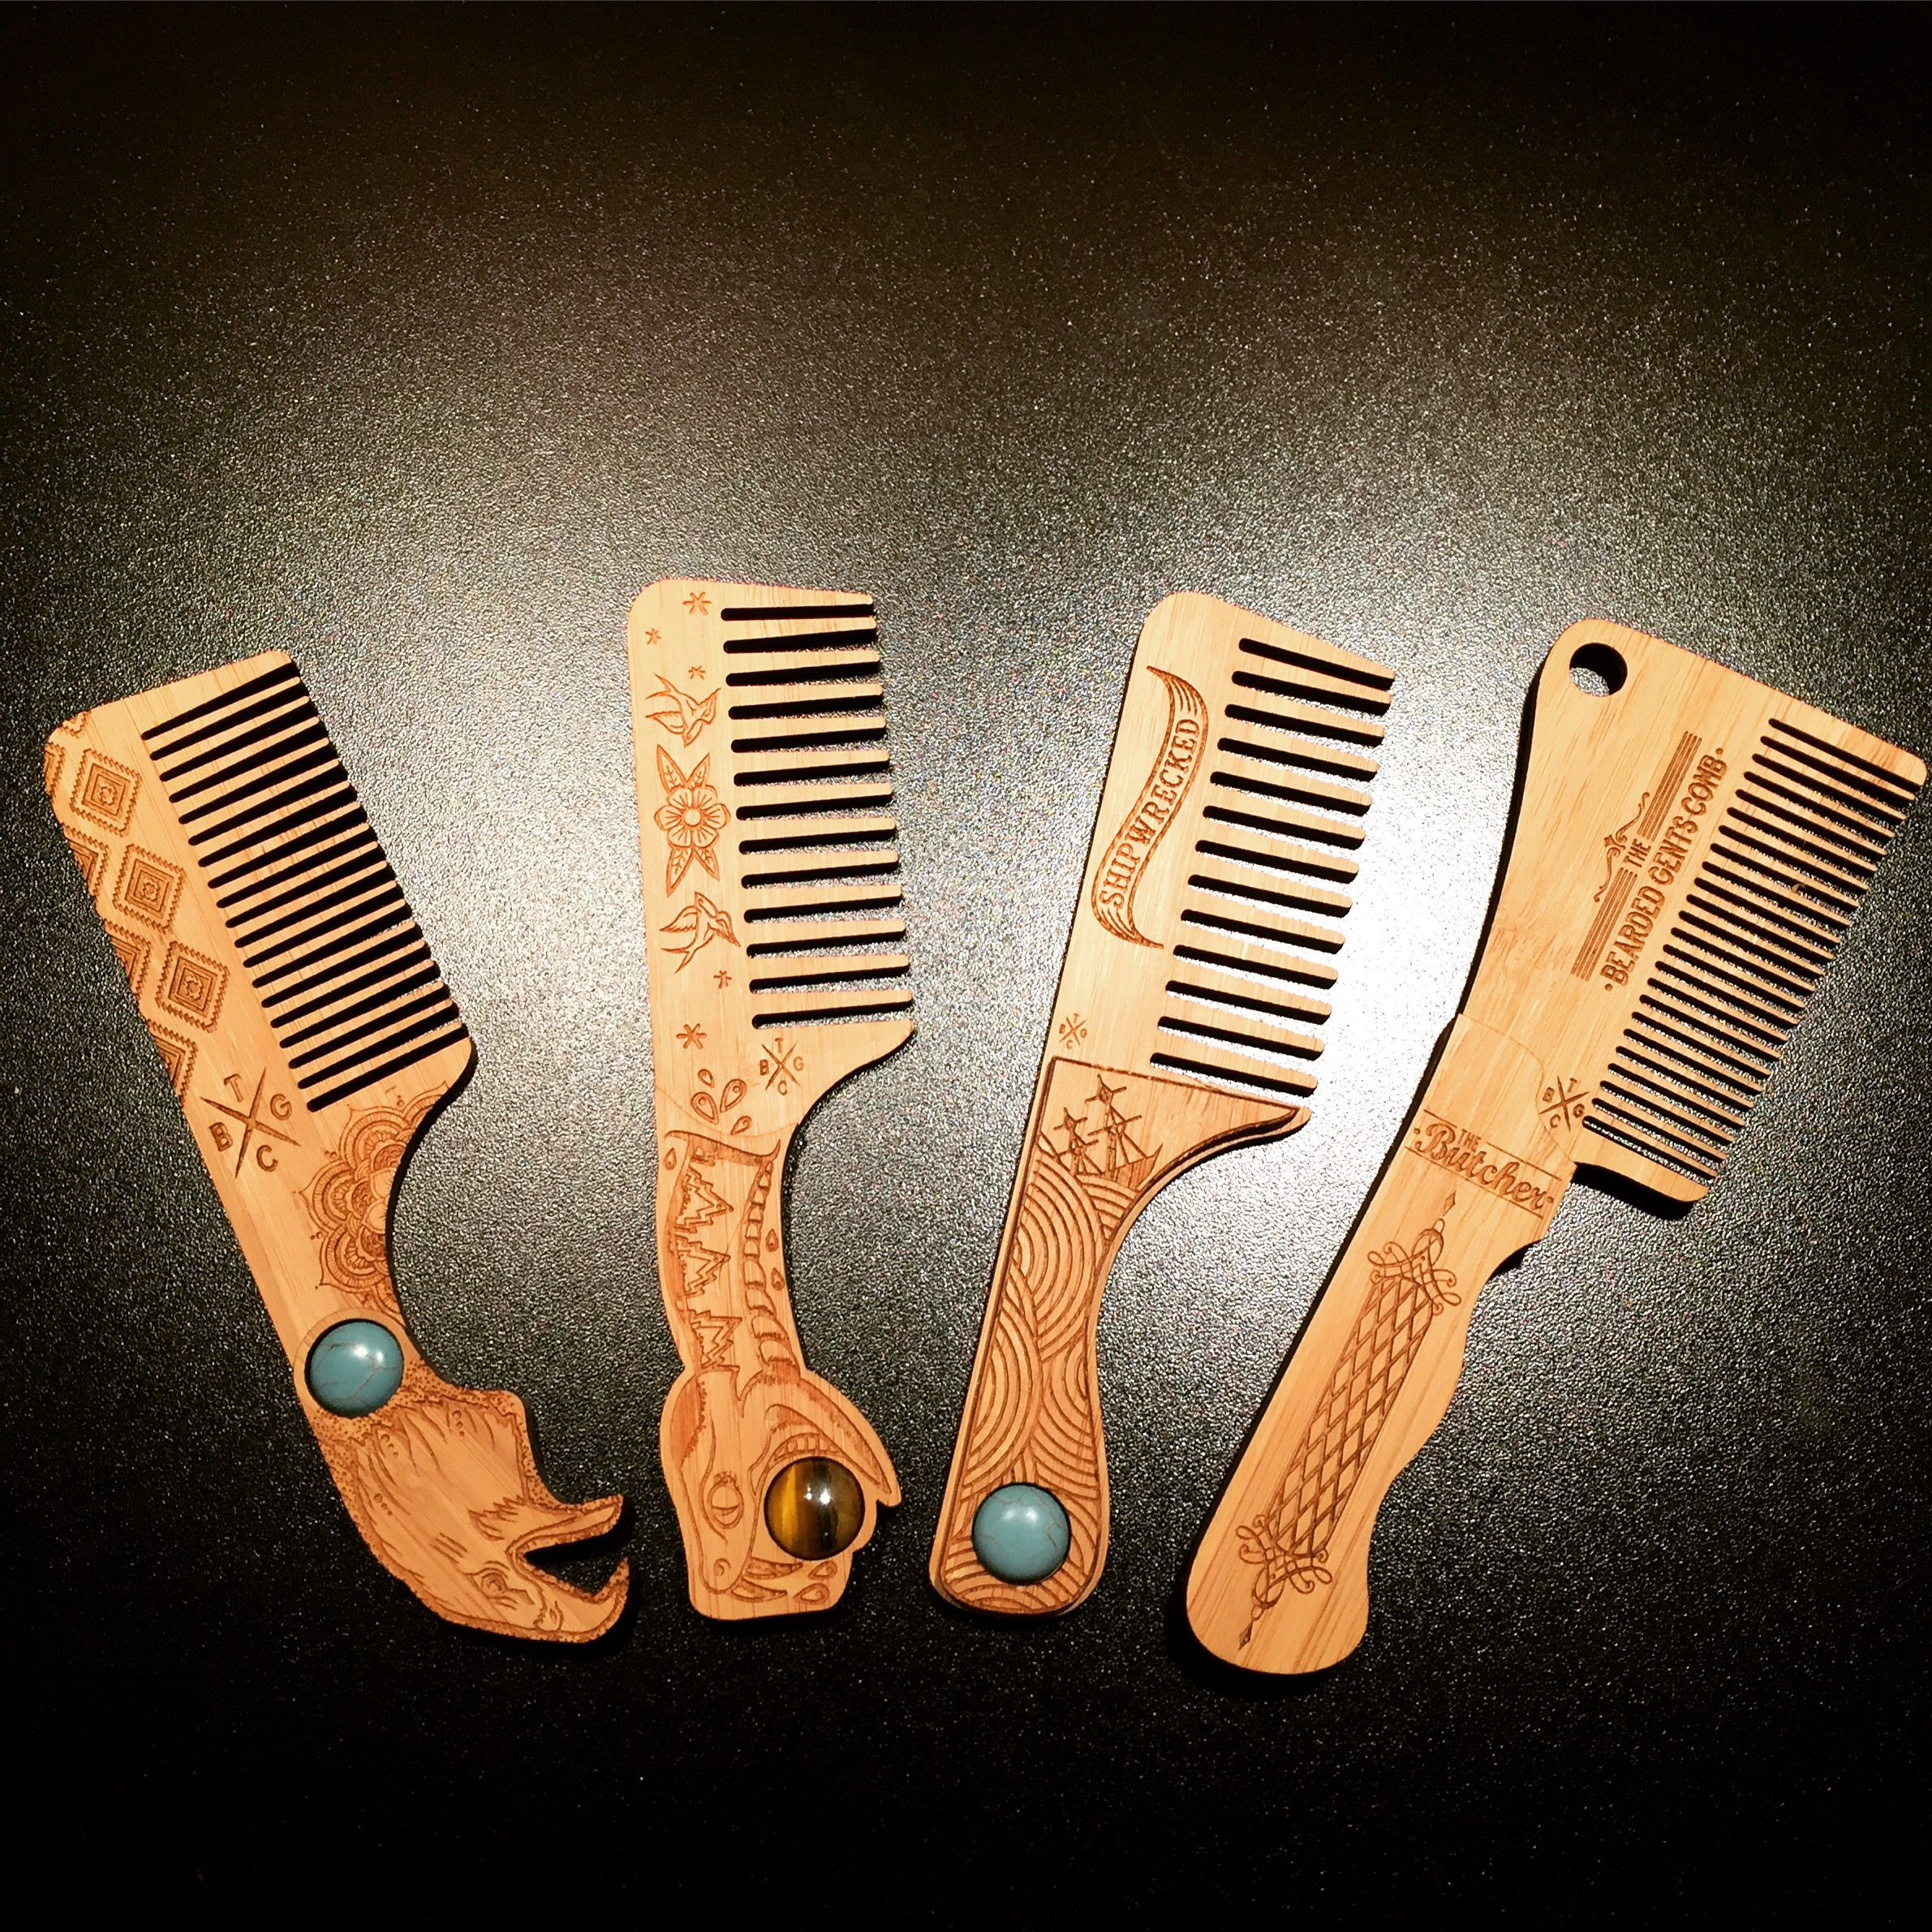 Pin by luis on Combs & Brushes | Wood comb, Beard styles